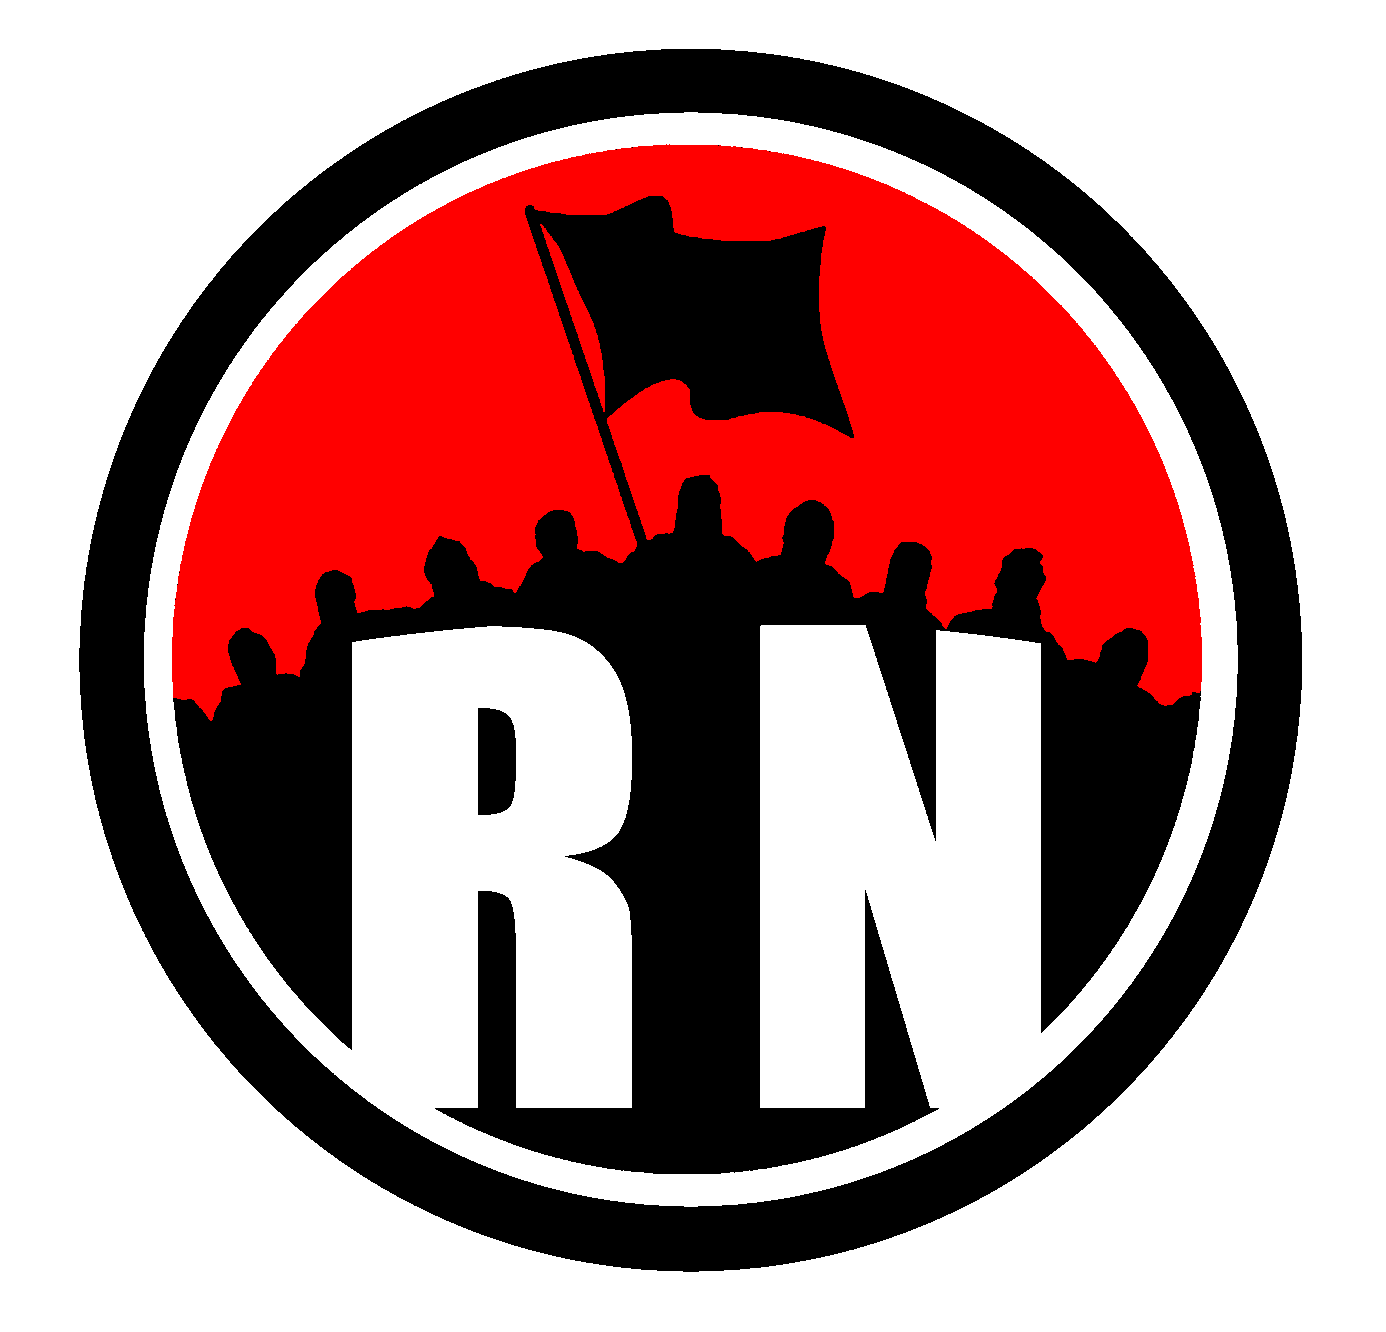 Fédération Anarchiste - Regard Noir (FA Paris)